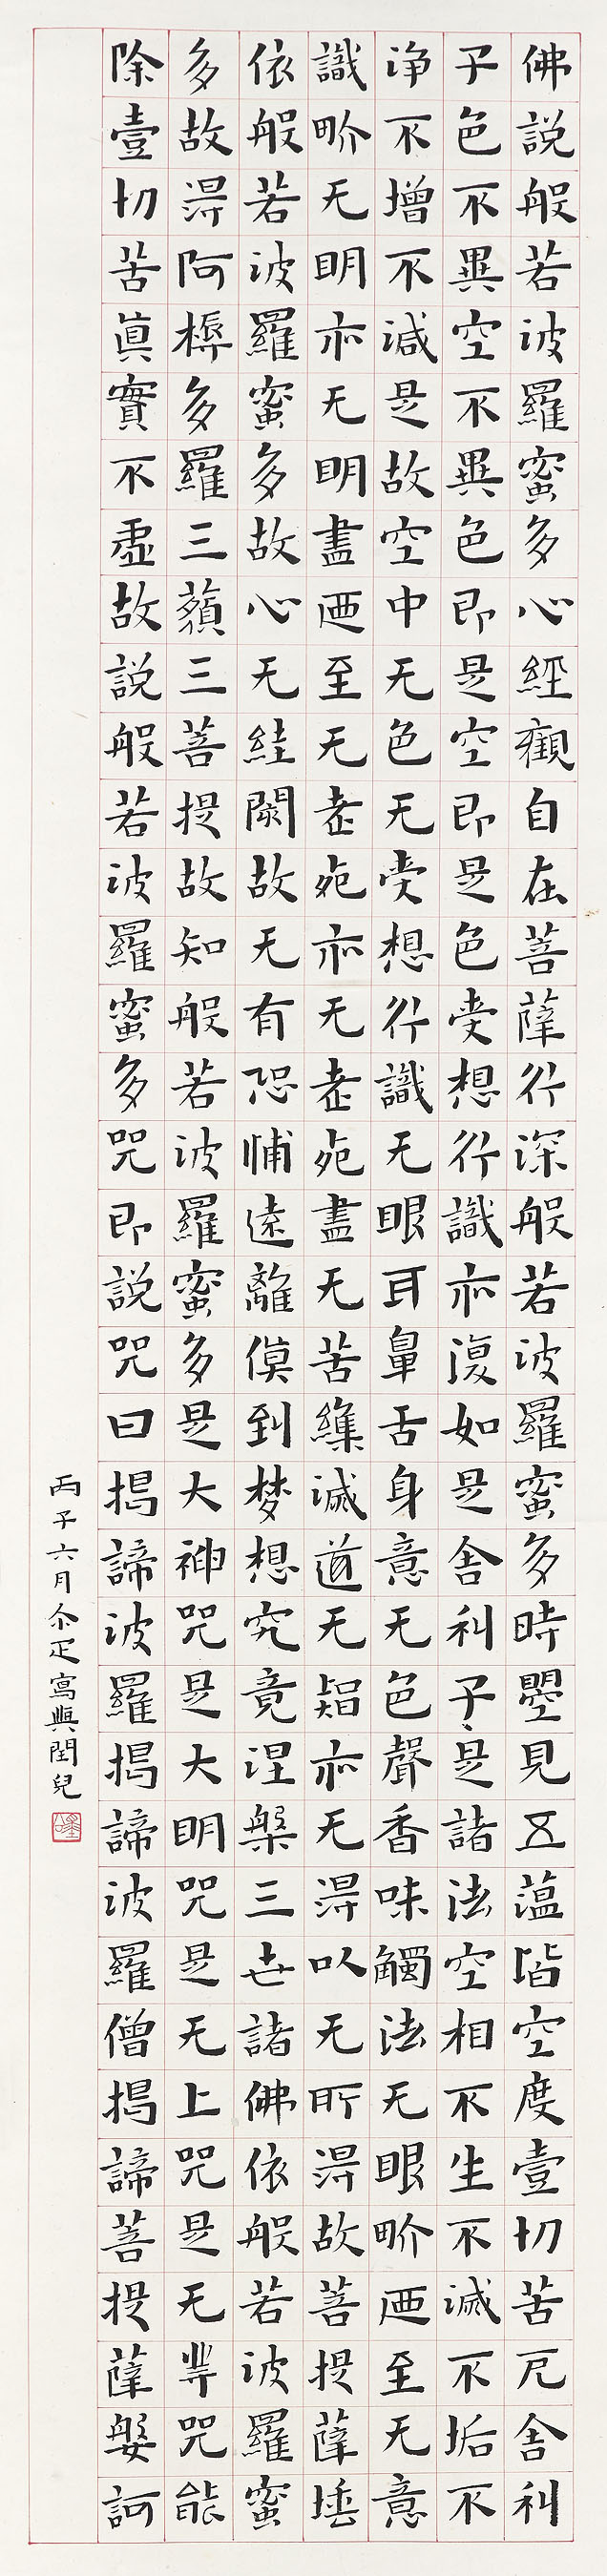 Calligraphy - Heart Sutra